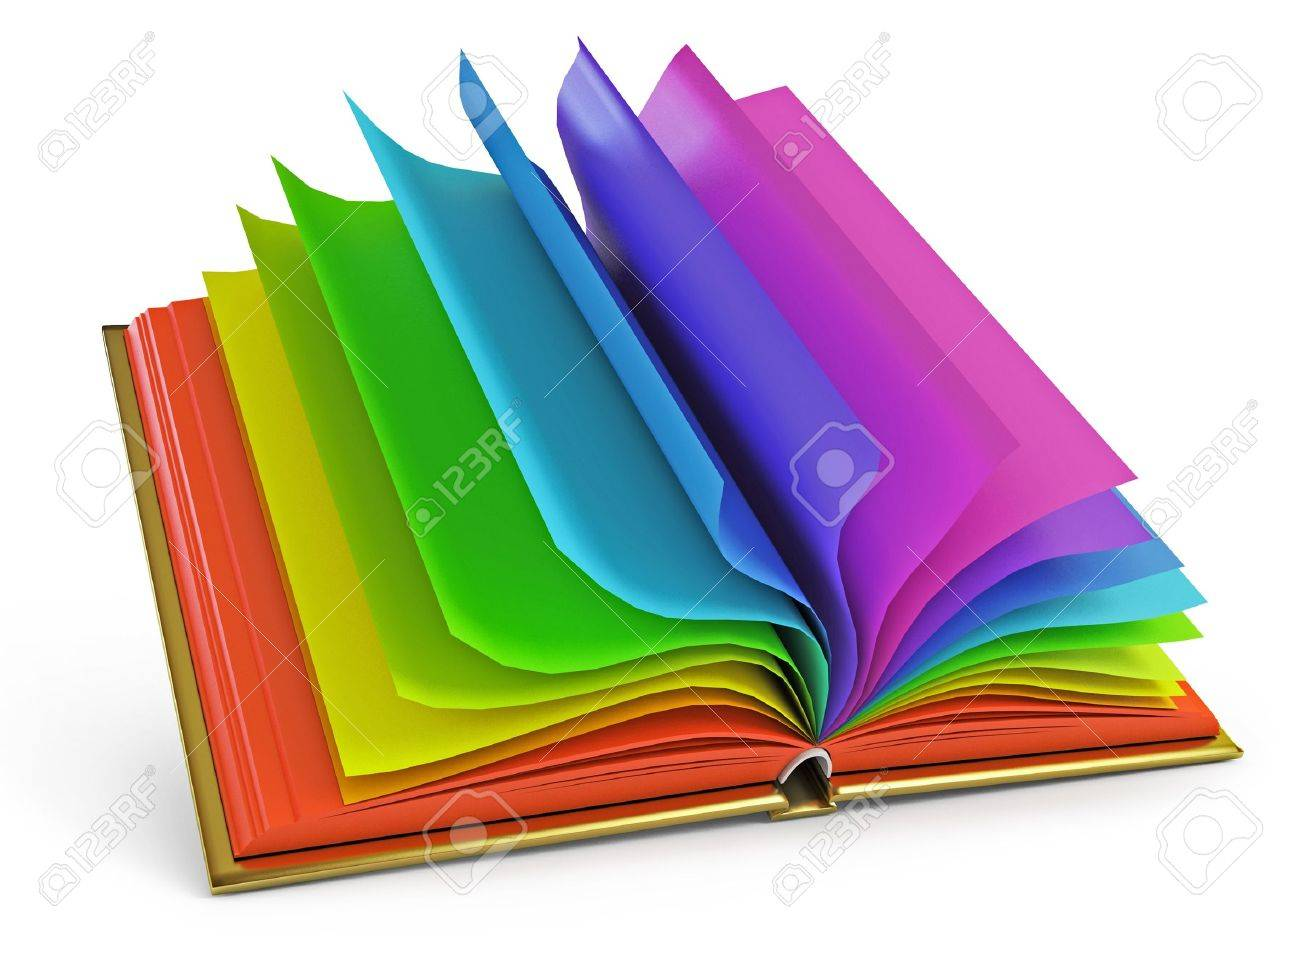 Open Book With Colorful Pages Stock Photo Picture And Royalty Free